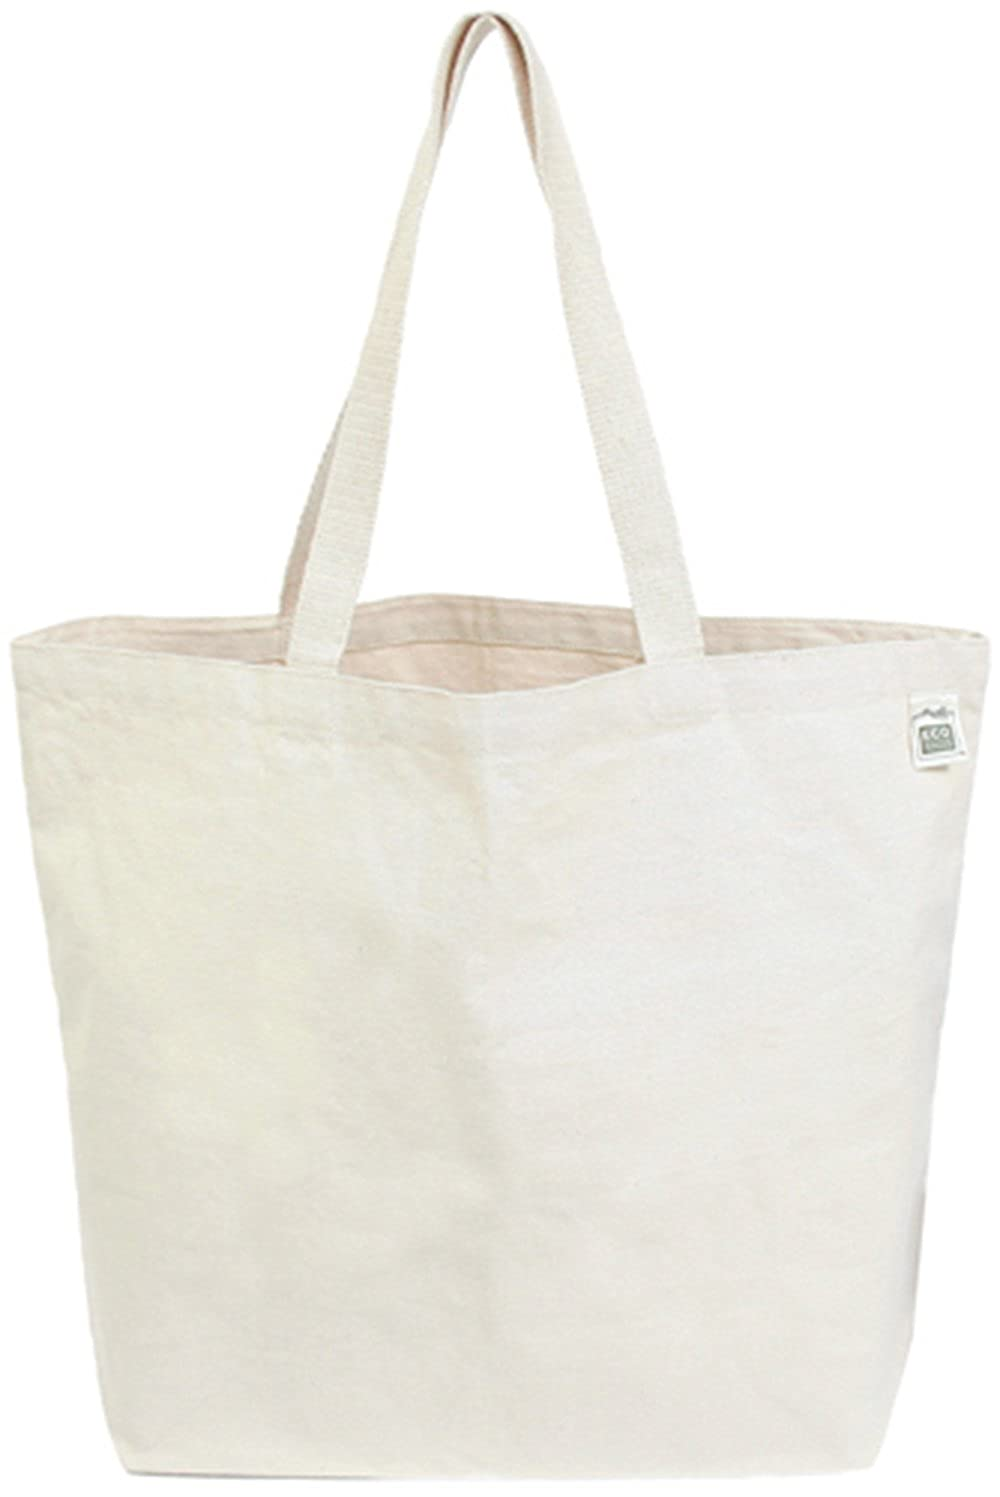 ECOBAGS Everyday Shopper Canvas Tote Bag